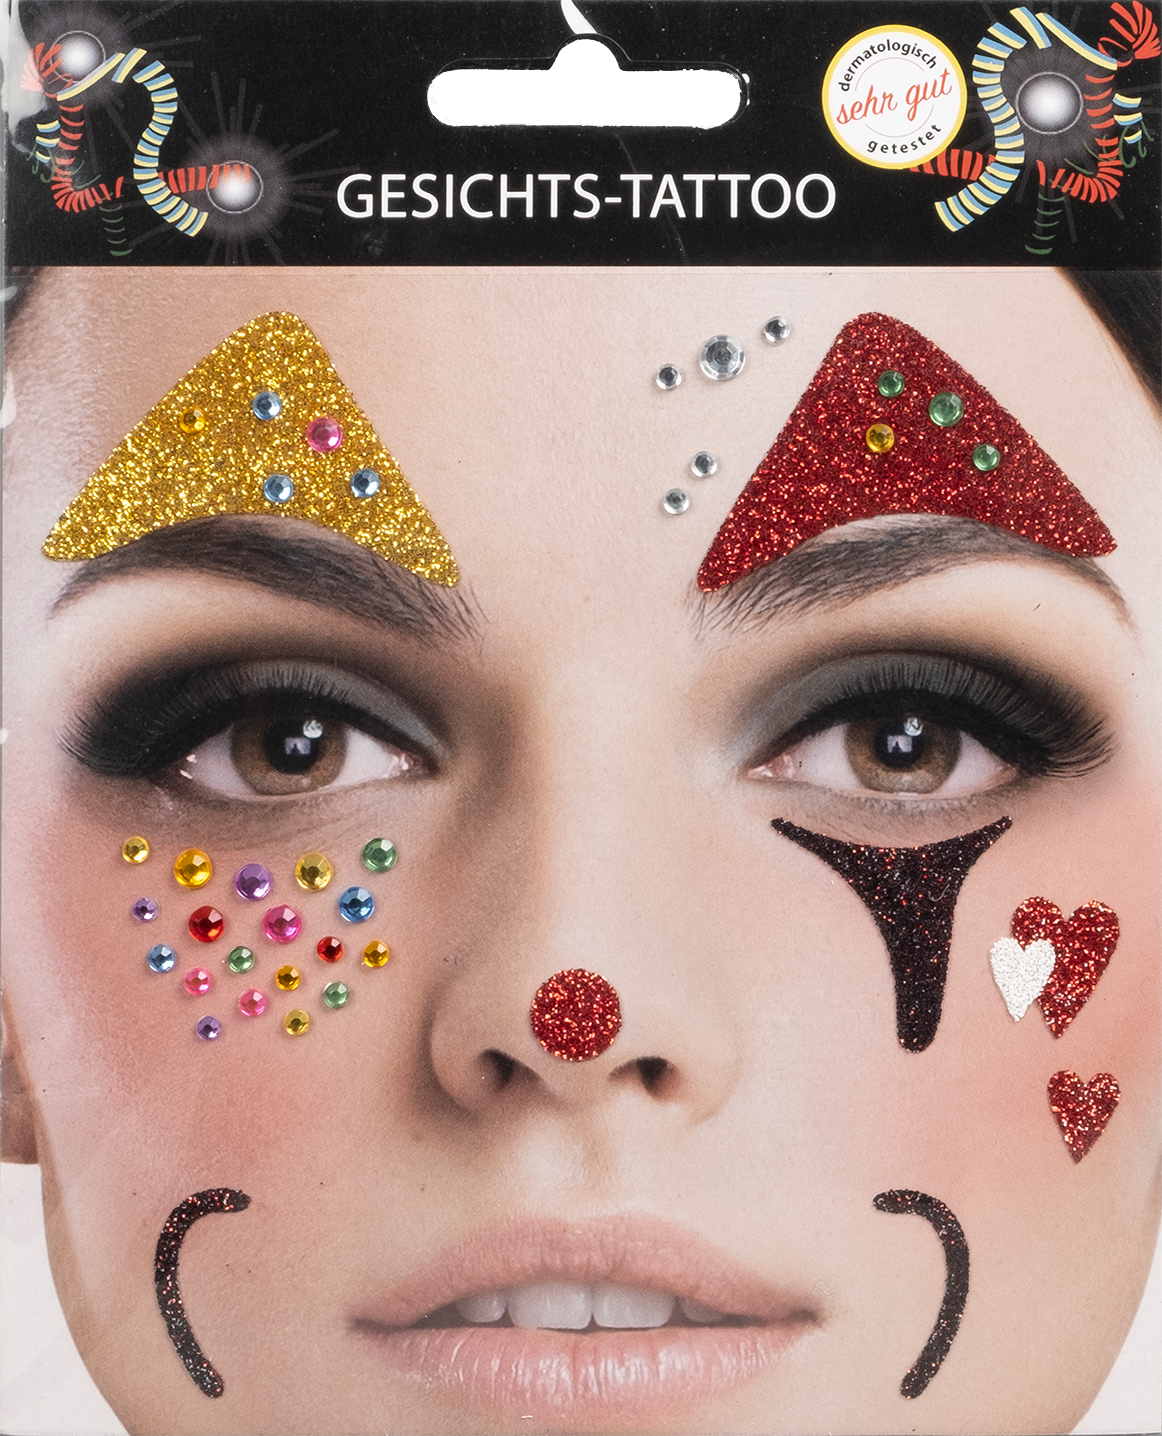 Gesichts-Tattoo Clown